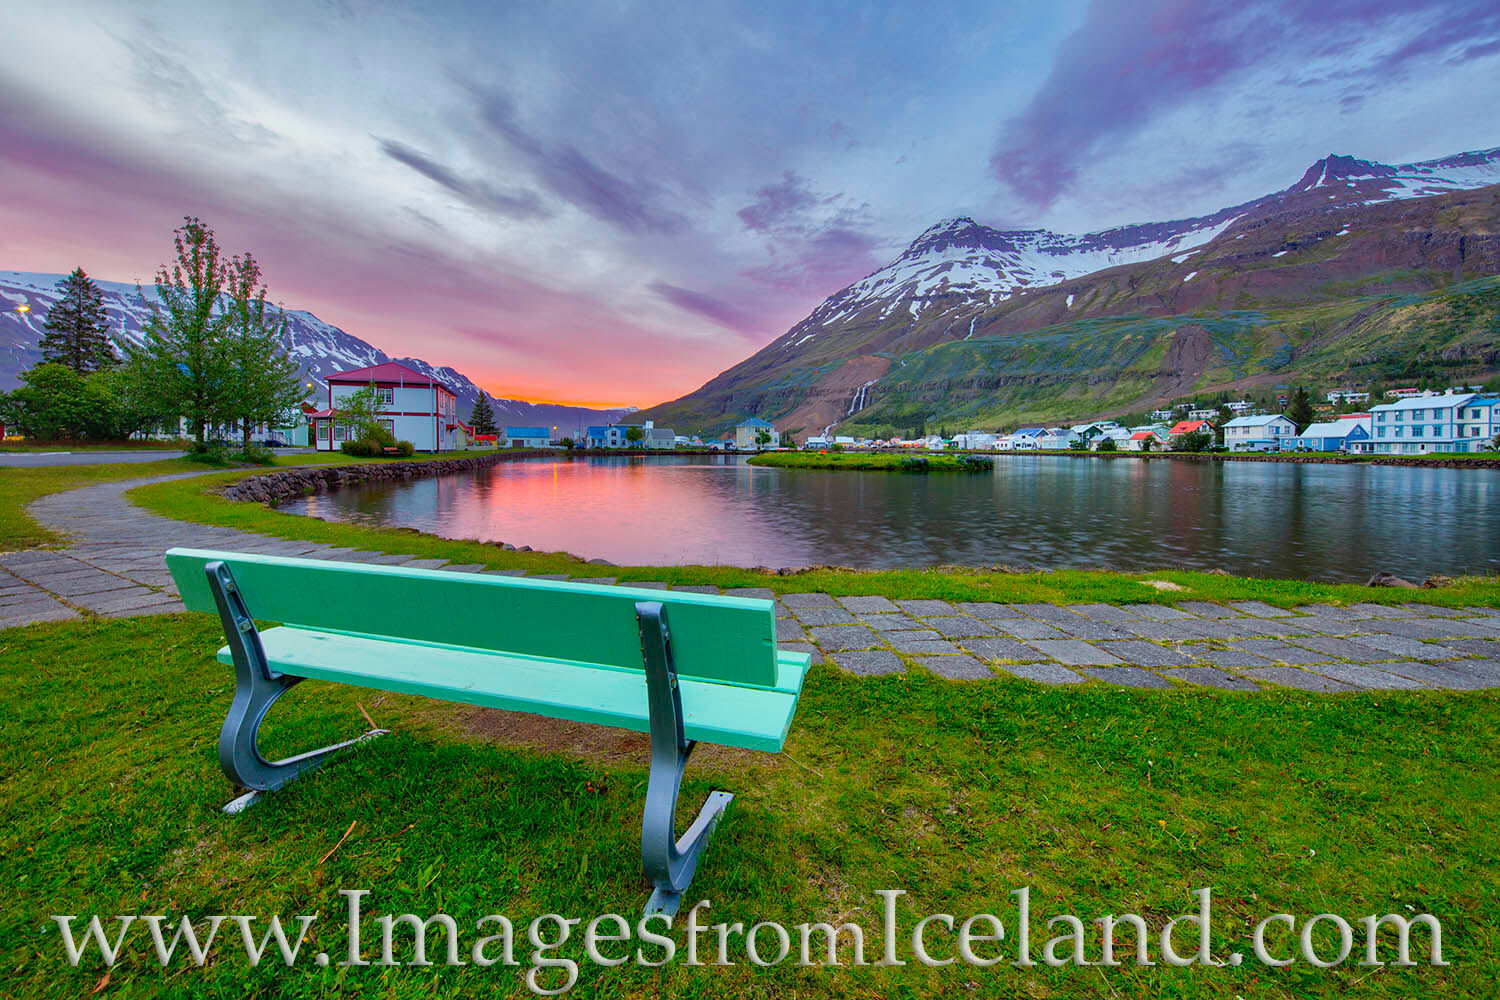 On a chilly night in east Iceland, the artsy village of Seydisfjördur rests under the midnight sun. Though it was late, just...